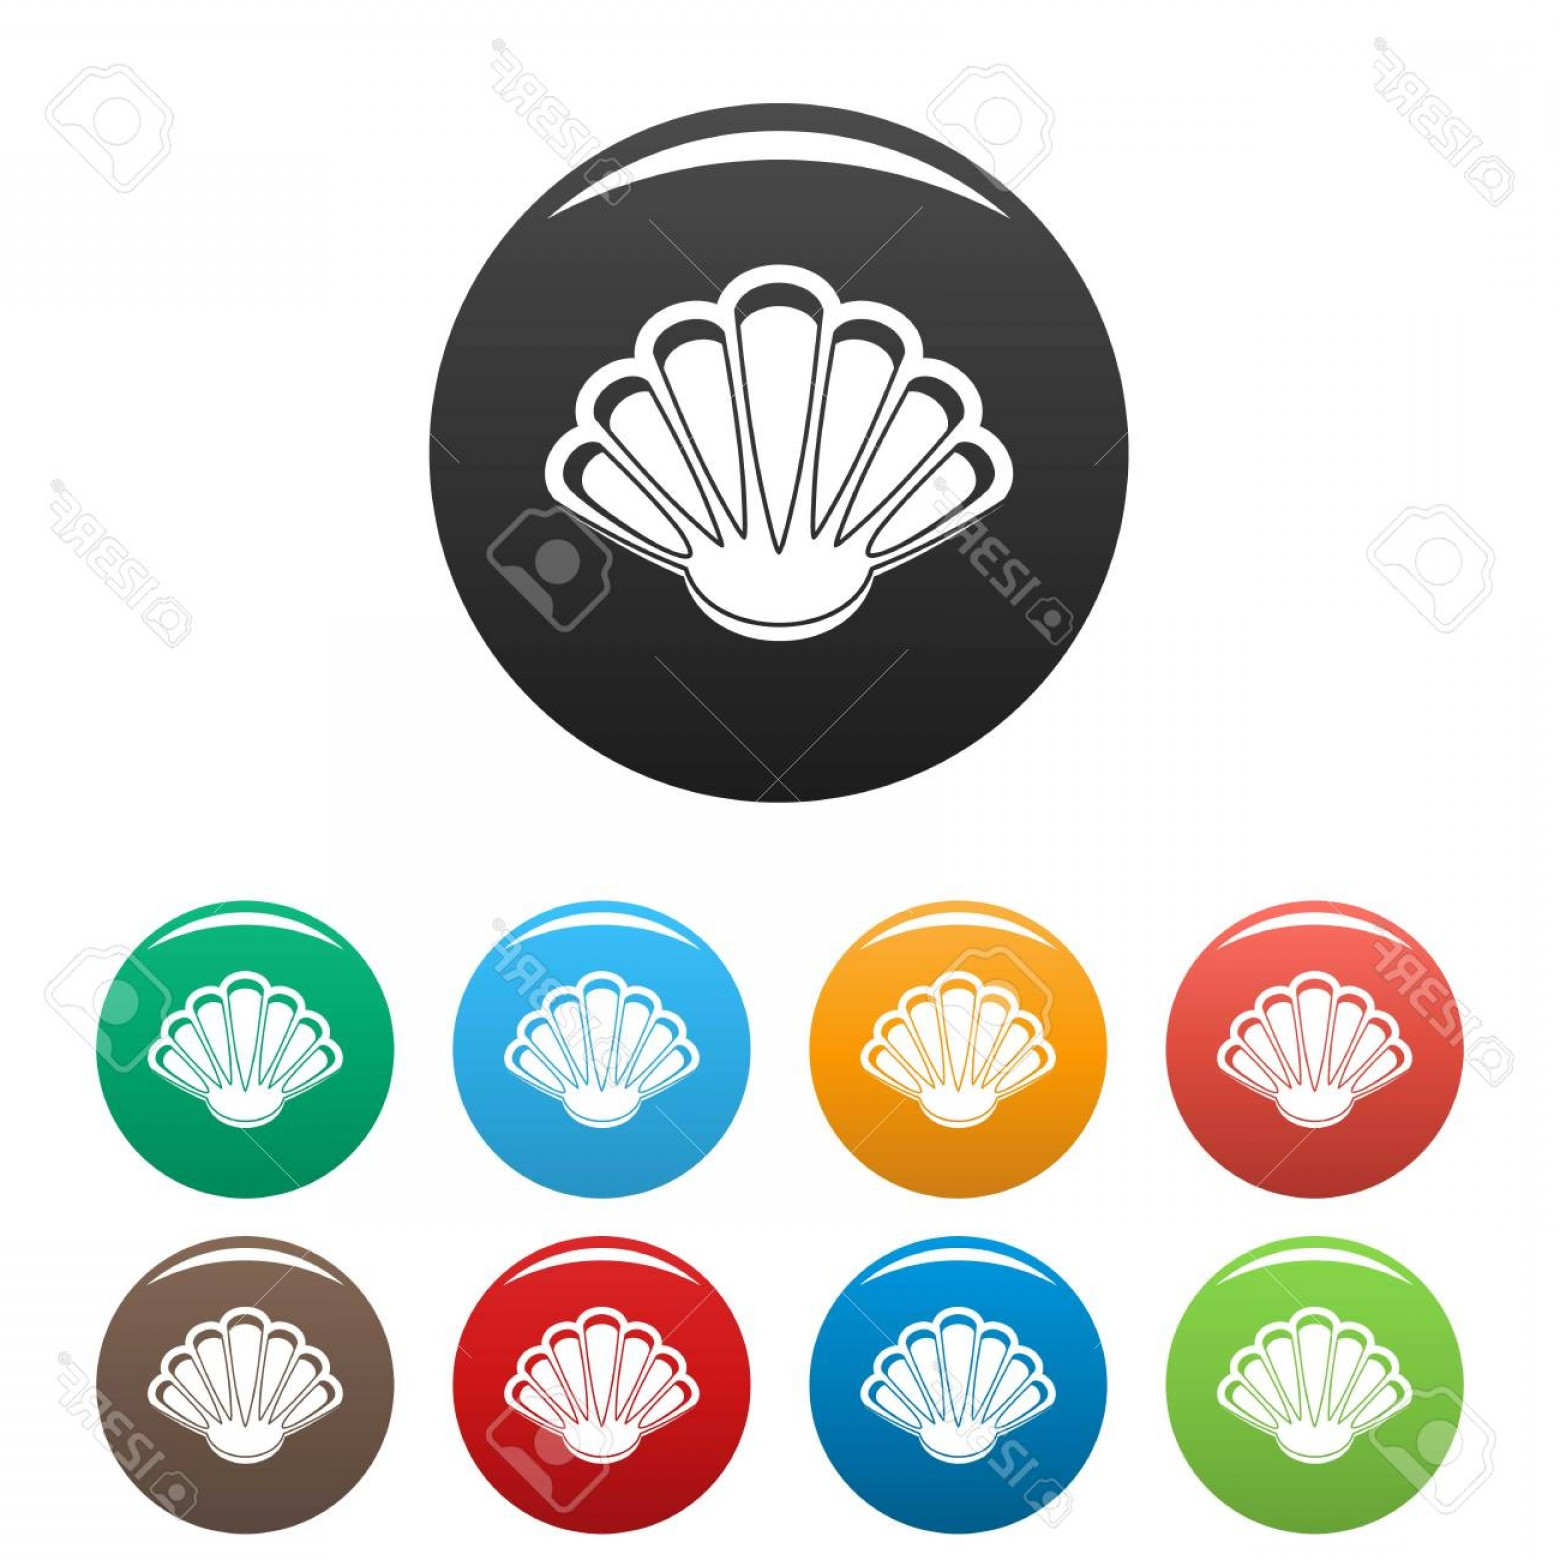 Shell Vector Icons: Photostock Vector Nice Shell Icon Simple Illustration Of Nice Shell Vector Icons Set Color Isolated On White